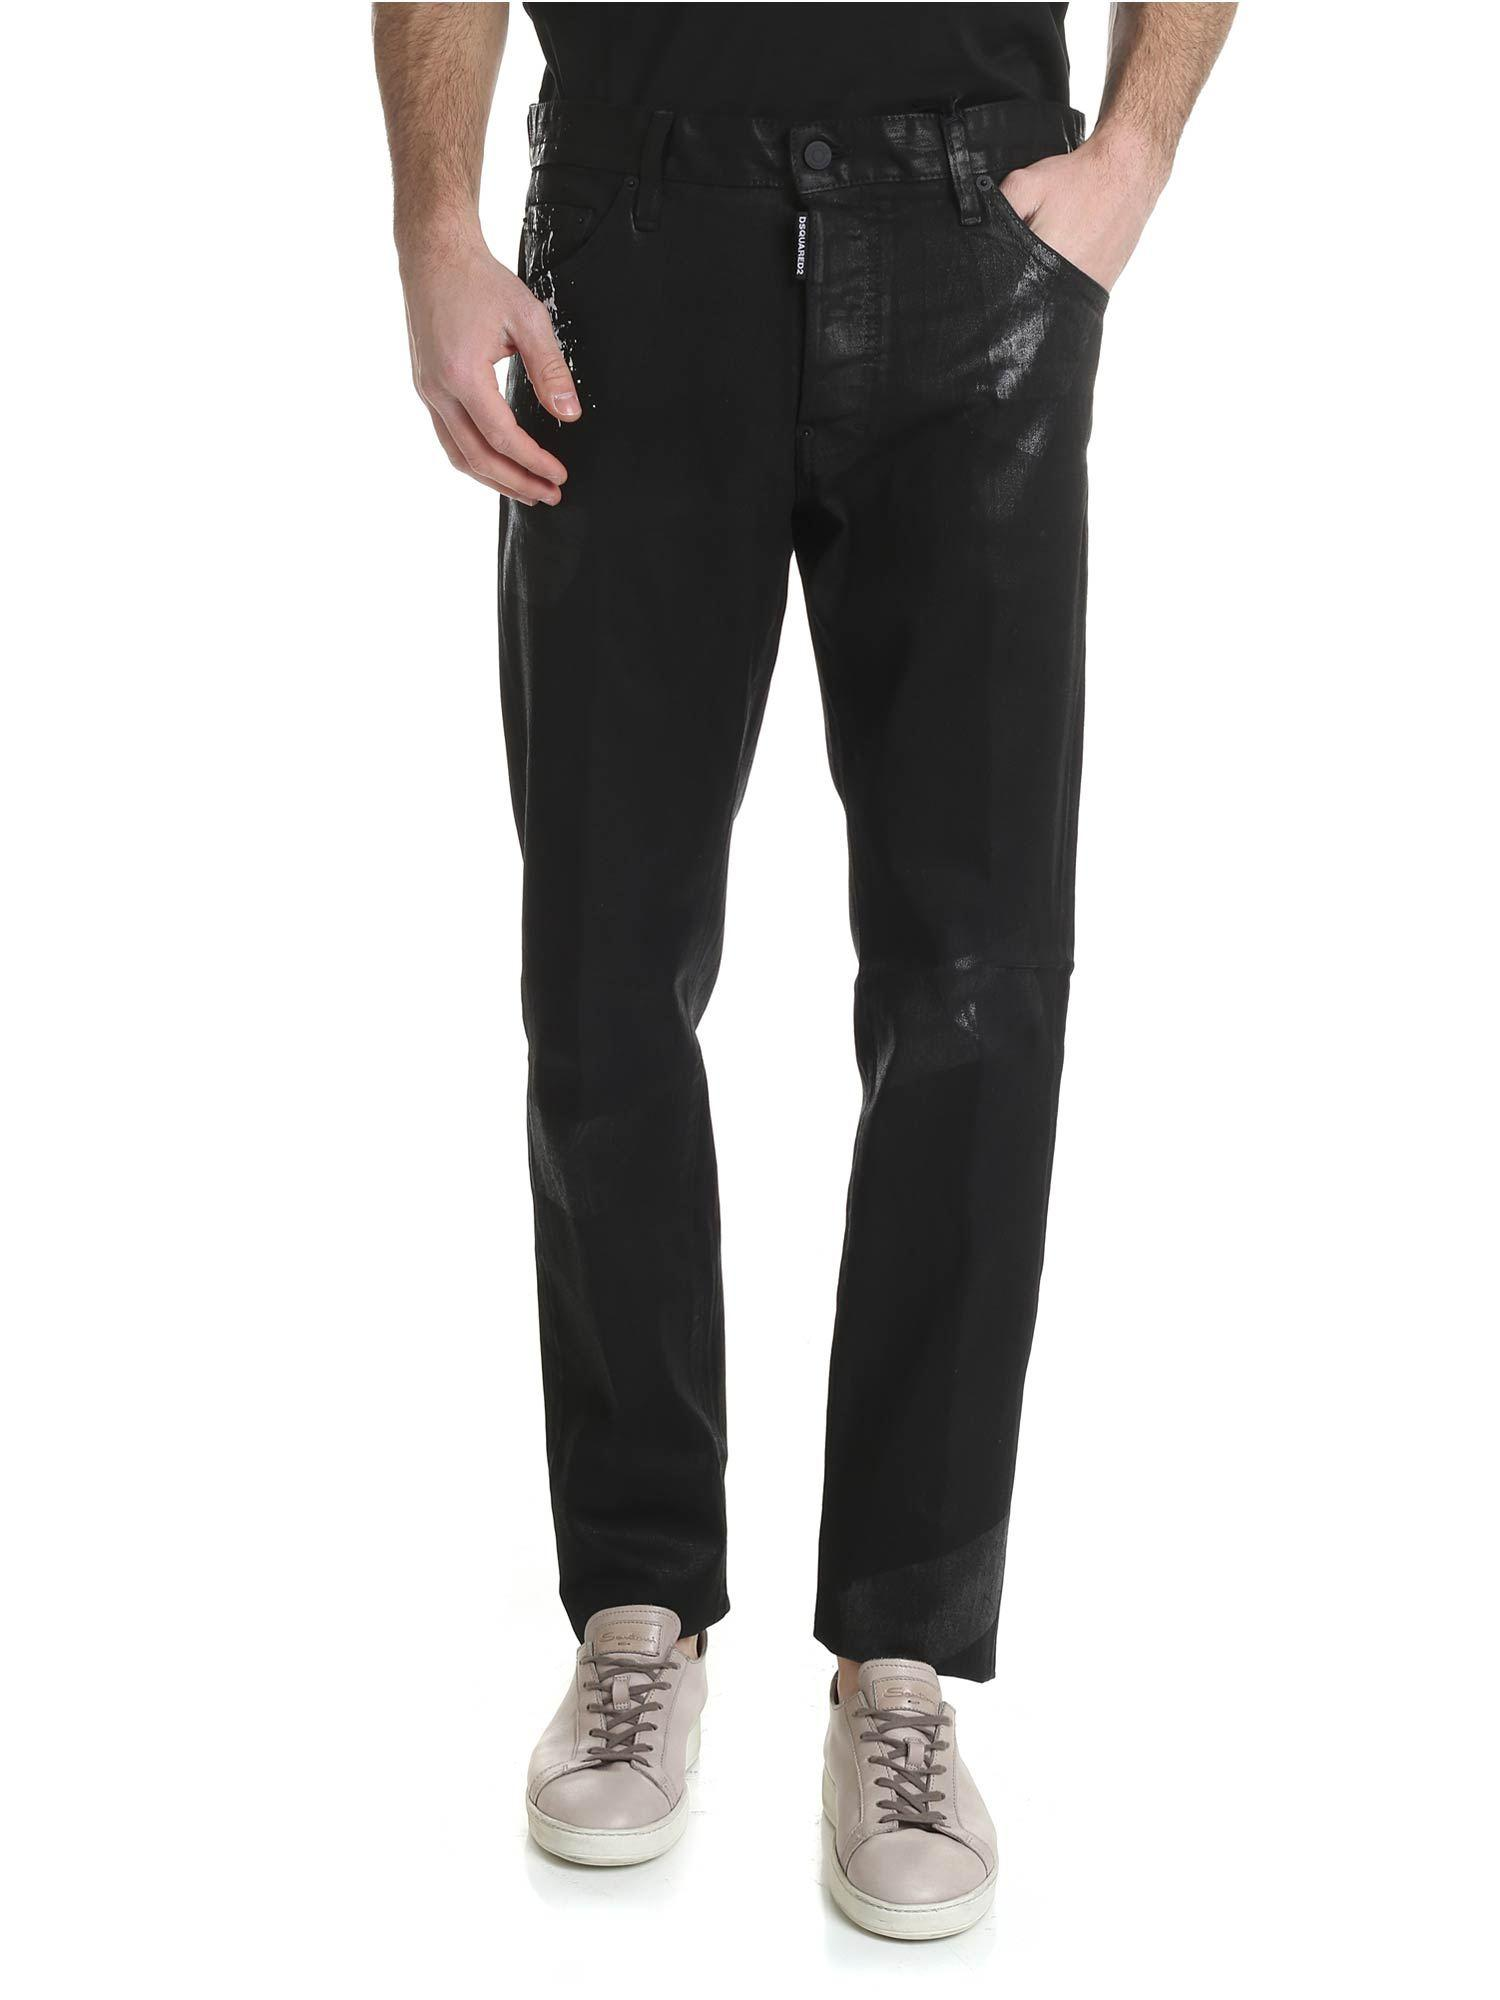 21ba9a5820a Lyst - DSquared² Cool Guy Jeans In Shiny Cotton in Black for Men